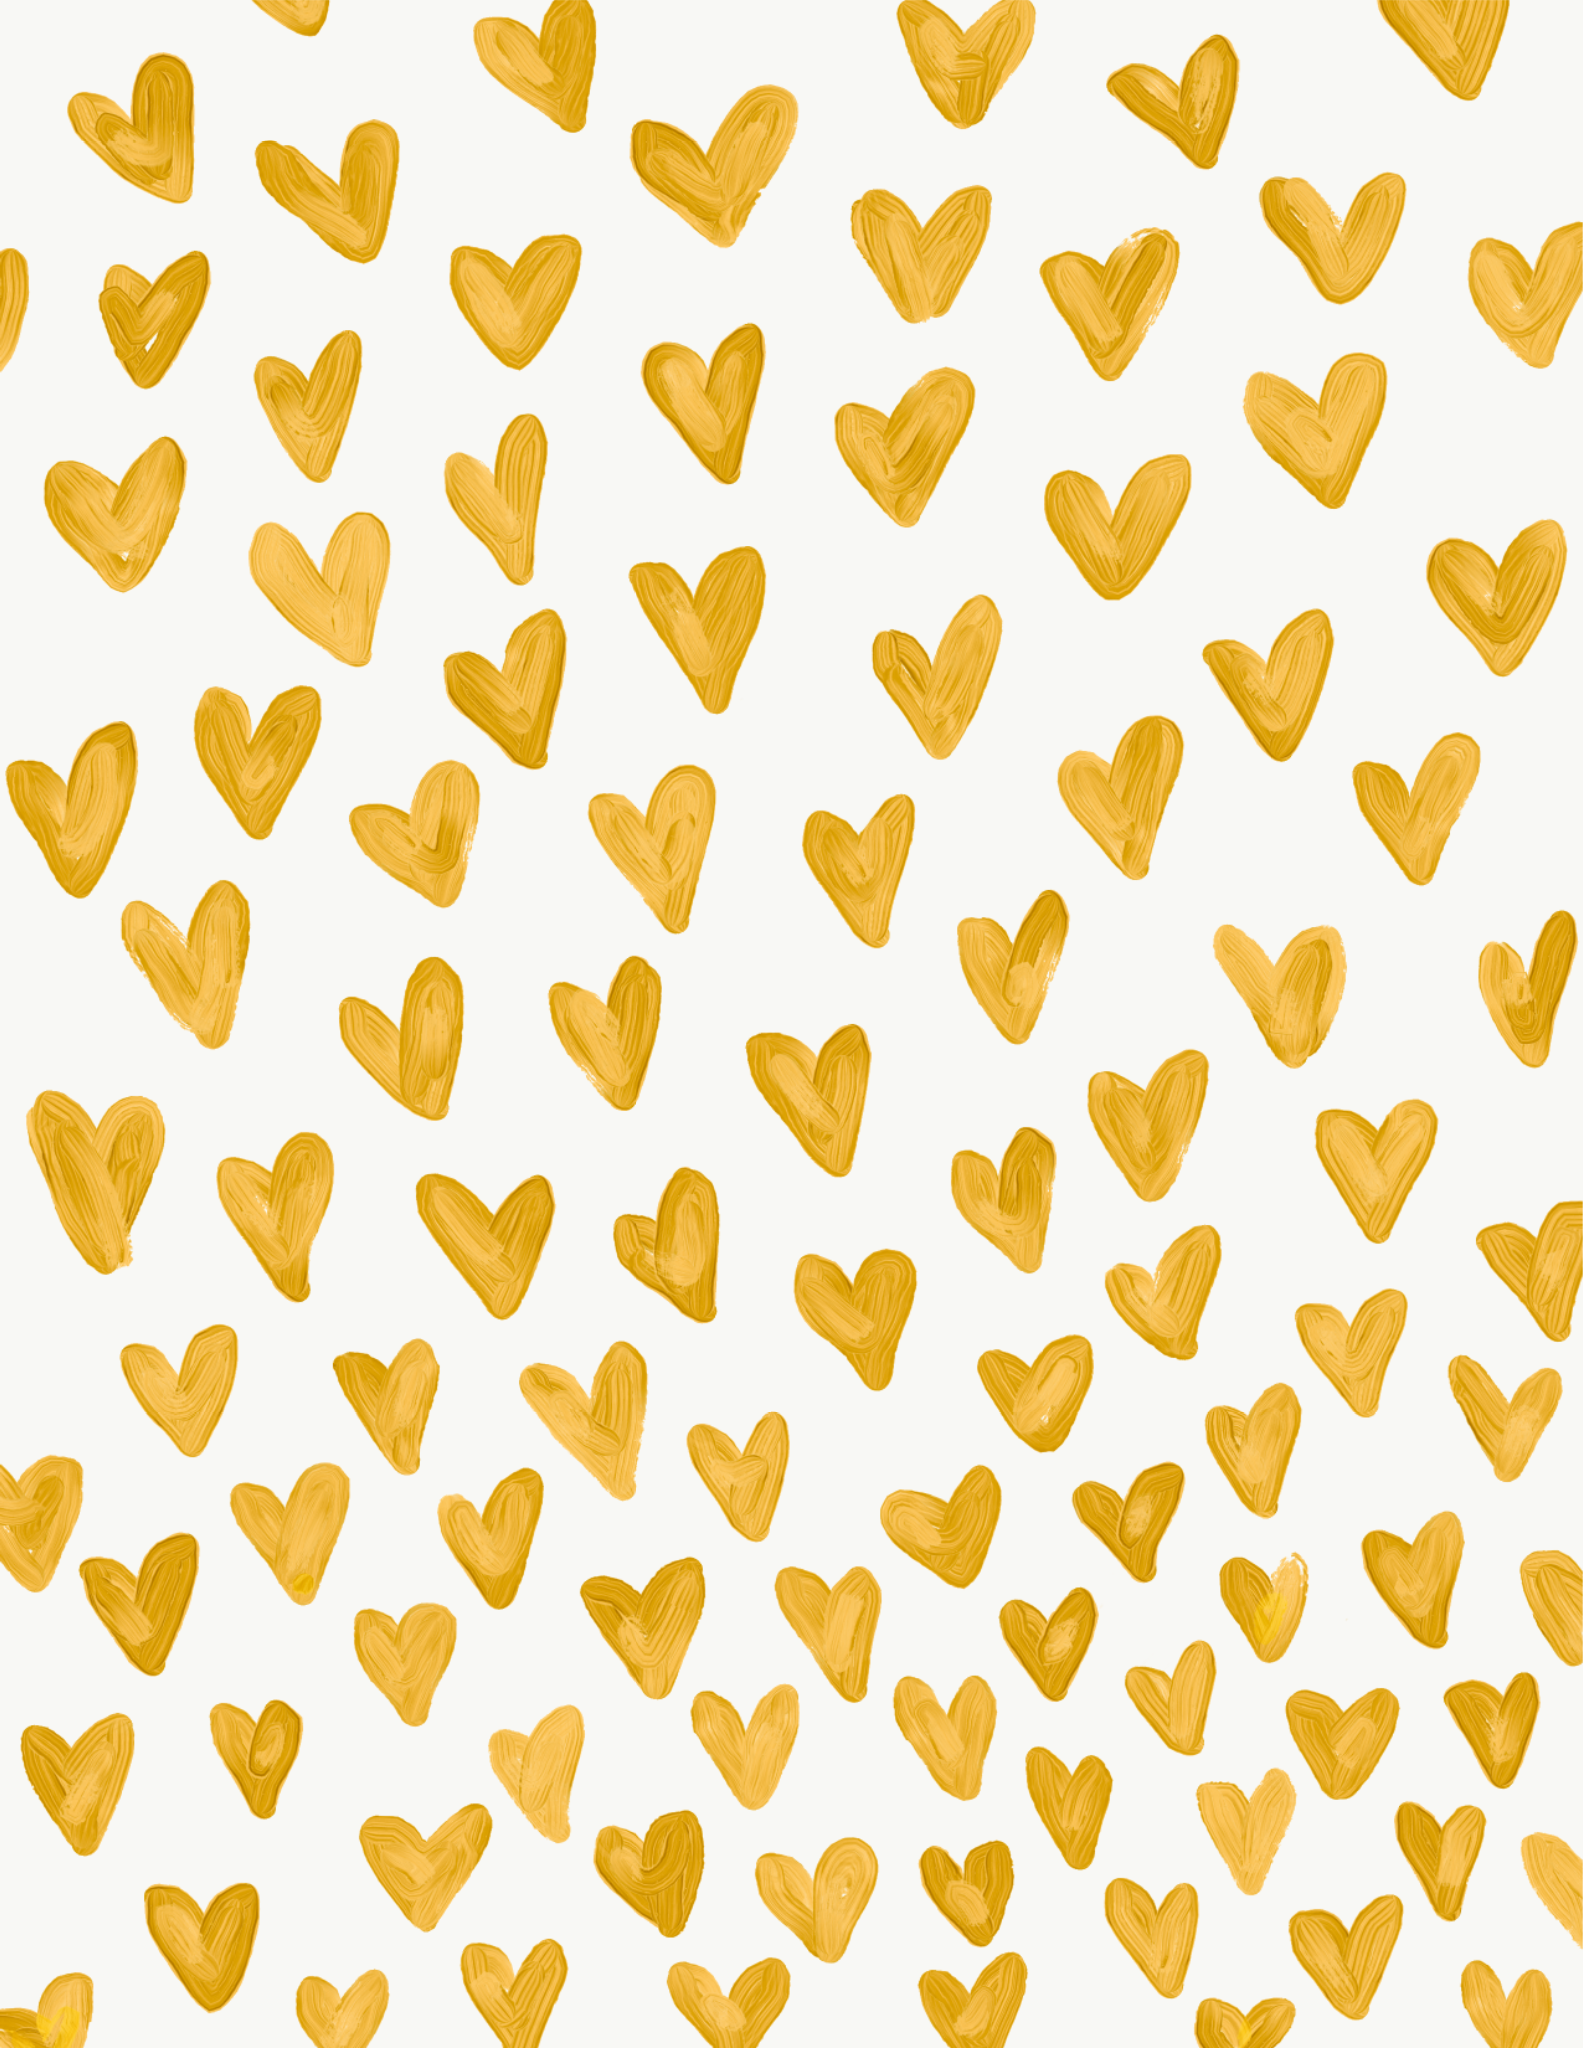 Yellow Hearts Wallpaper Made By Me Heart Wallpaper Iphone Wallpaper Yellow Yellow Heart